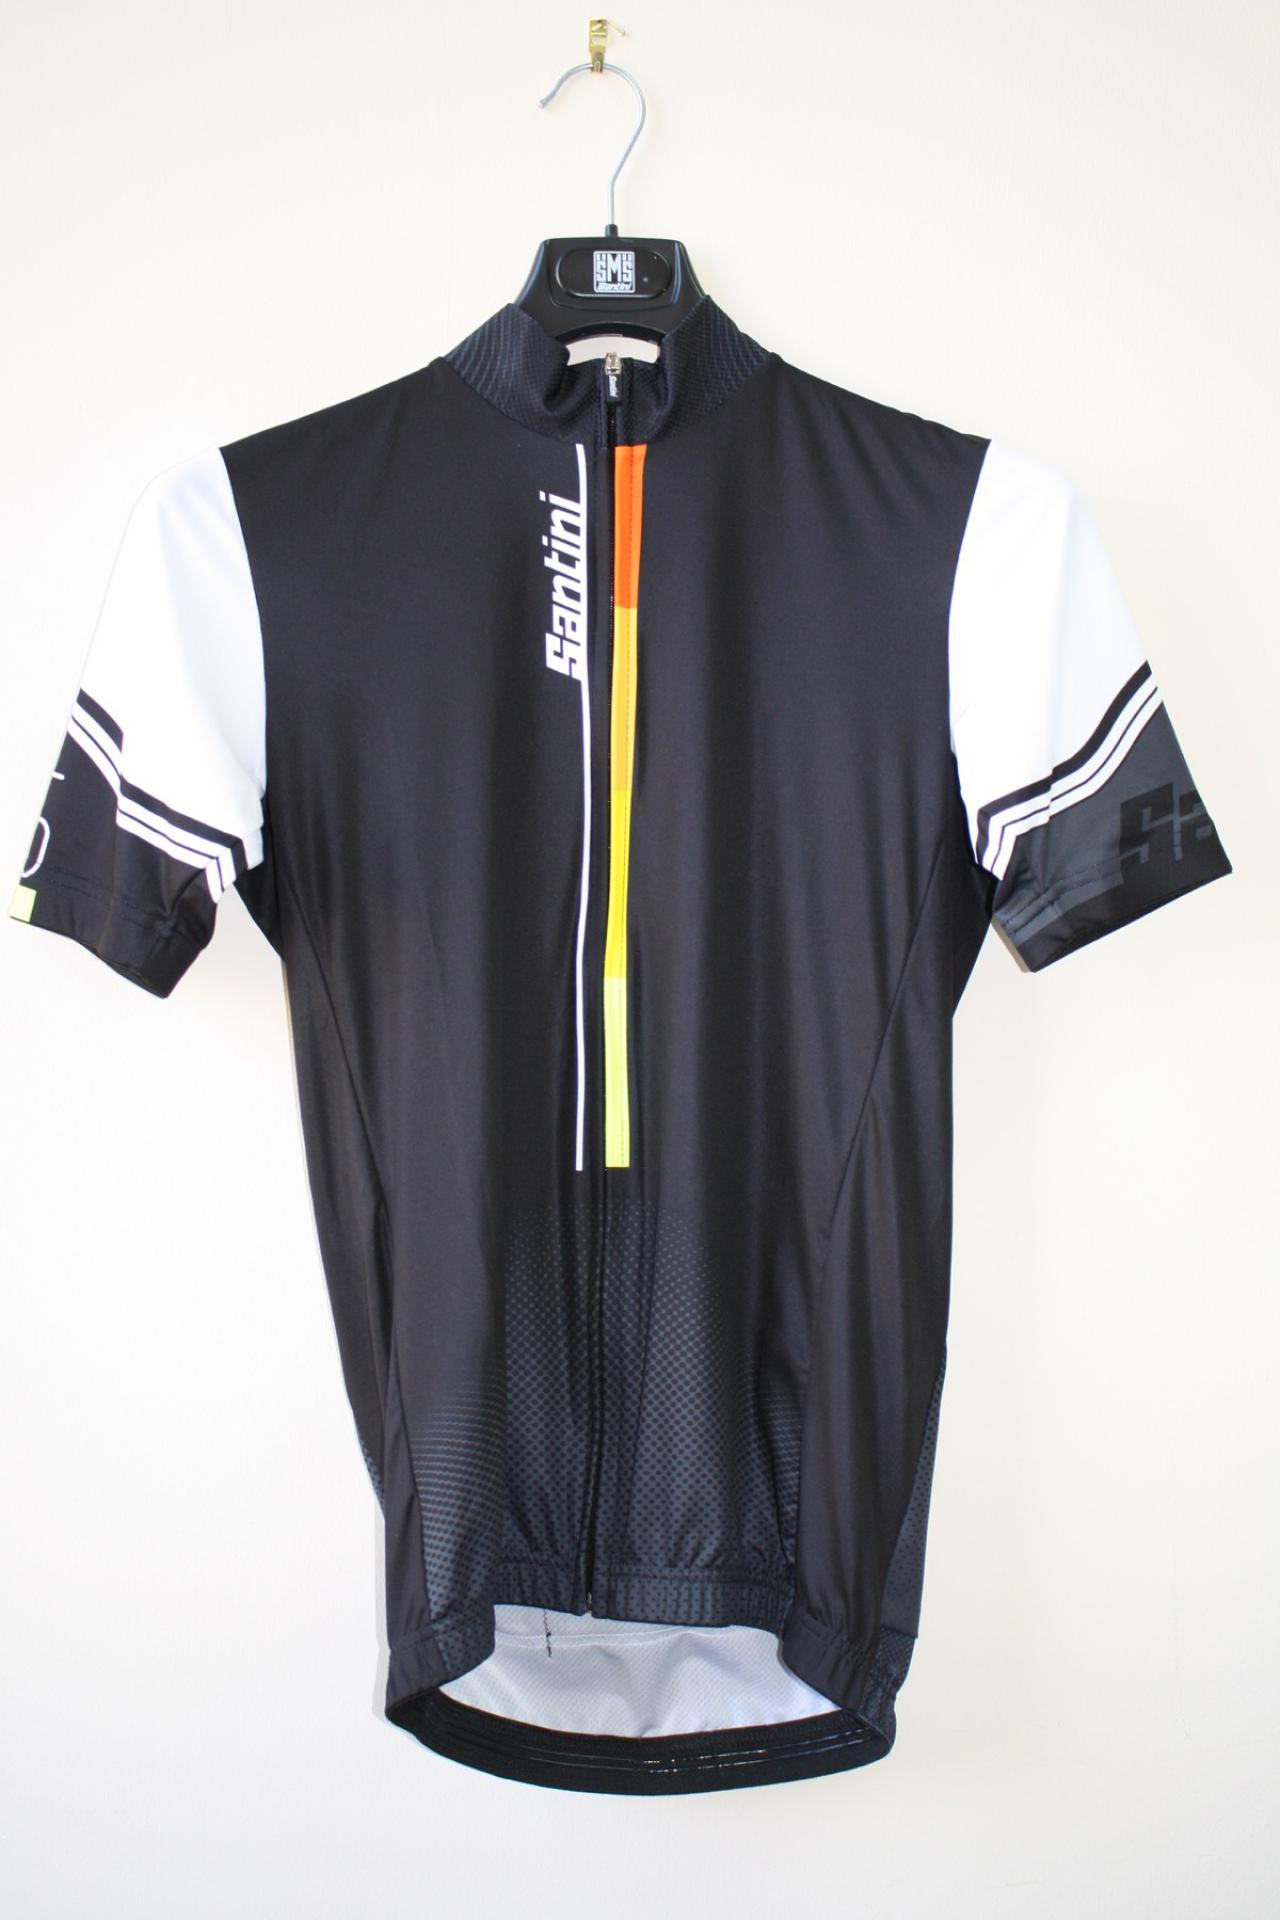 Men/'s Spring Classic Cycling Bib Shorts with Max2 Pad made in Italy by Santini